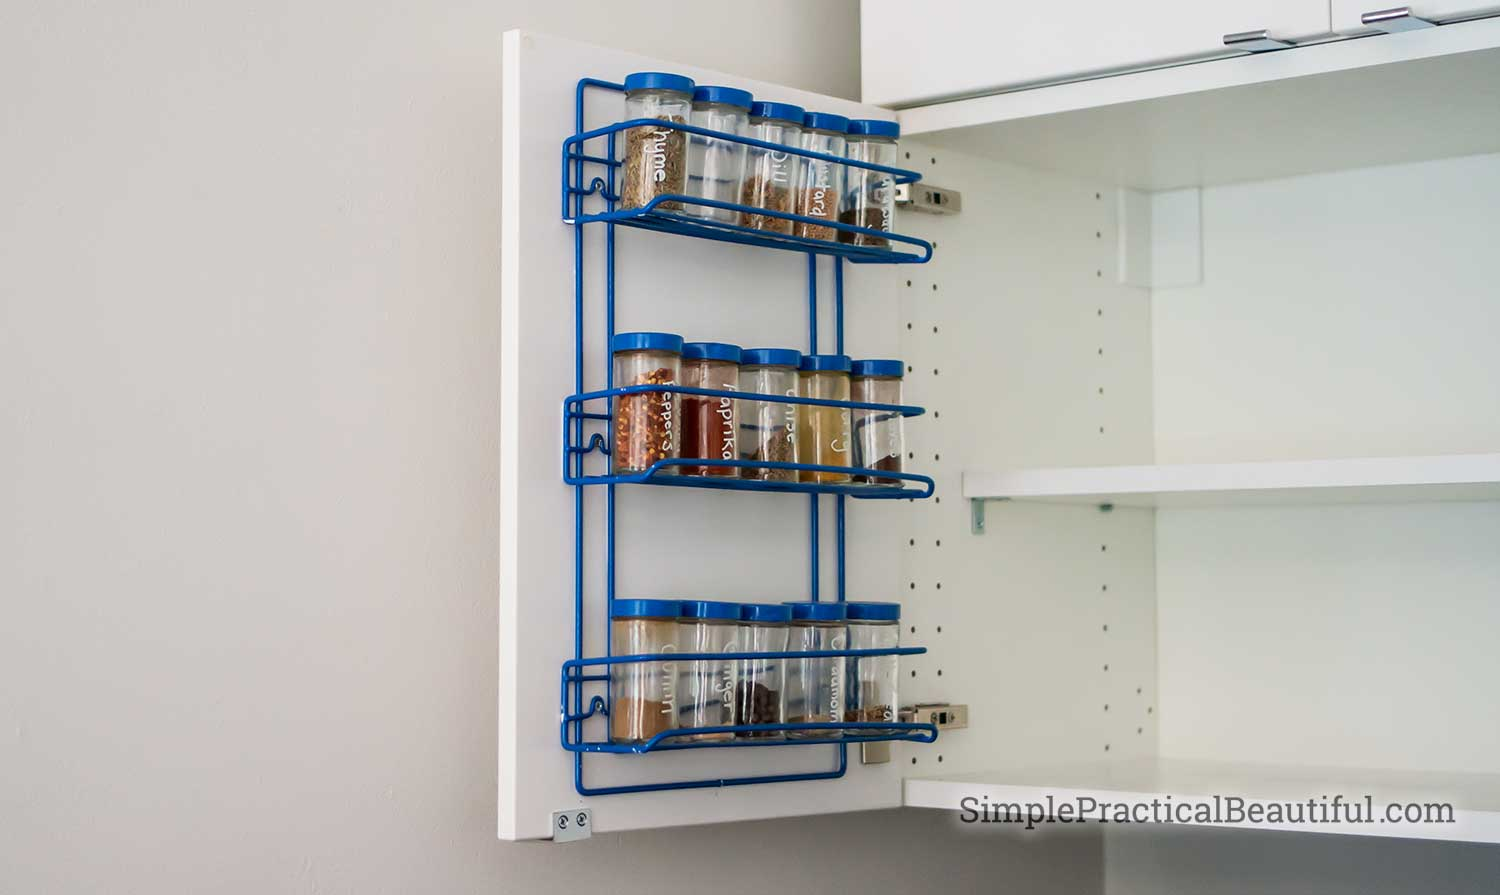 How To Add A Spice Rack To An Ikea Cabinet Door Simple